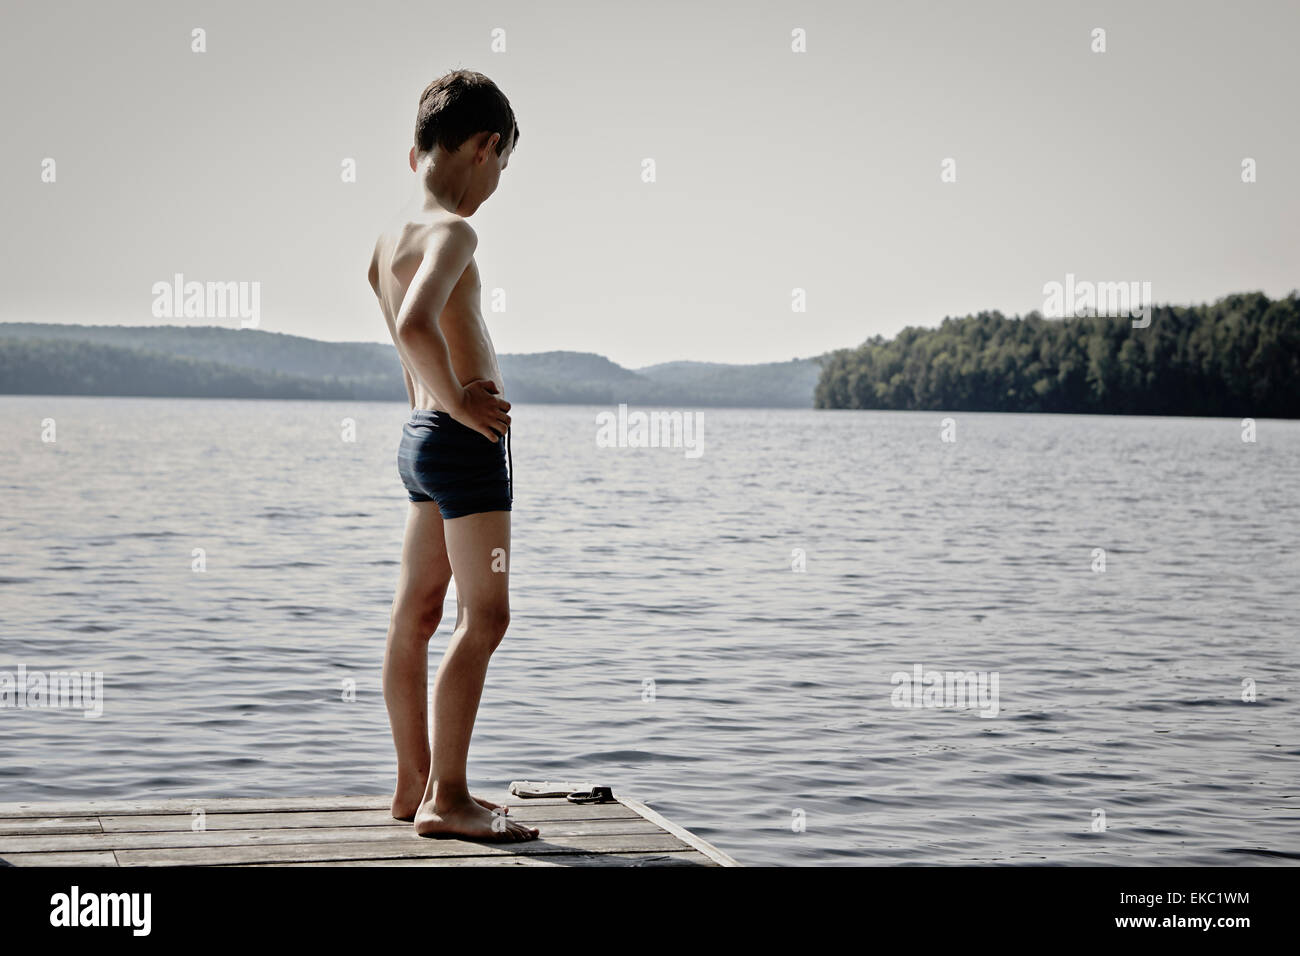 Boy looking down lake from wooden pier, Ontario, Canada - Stock Image